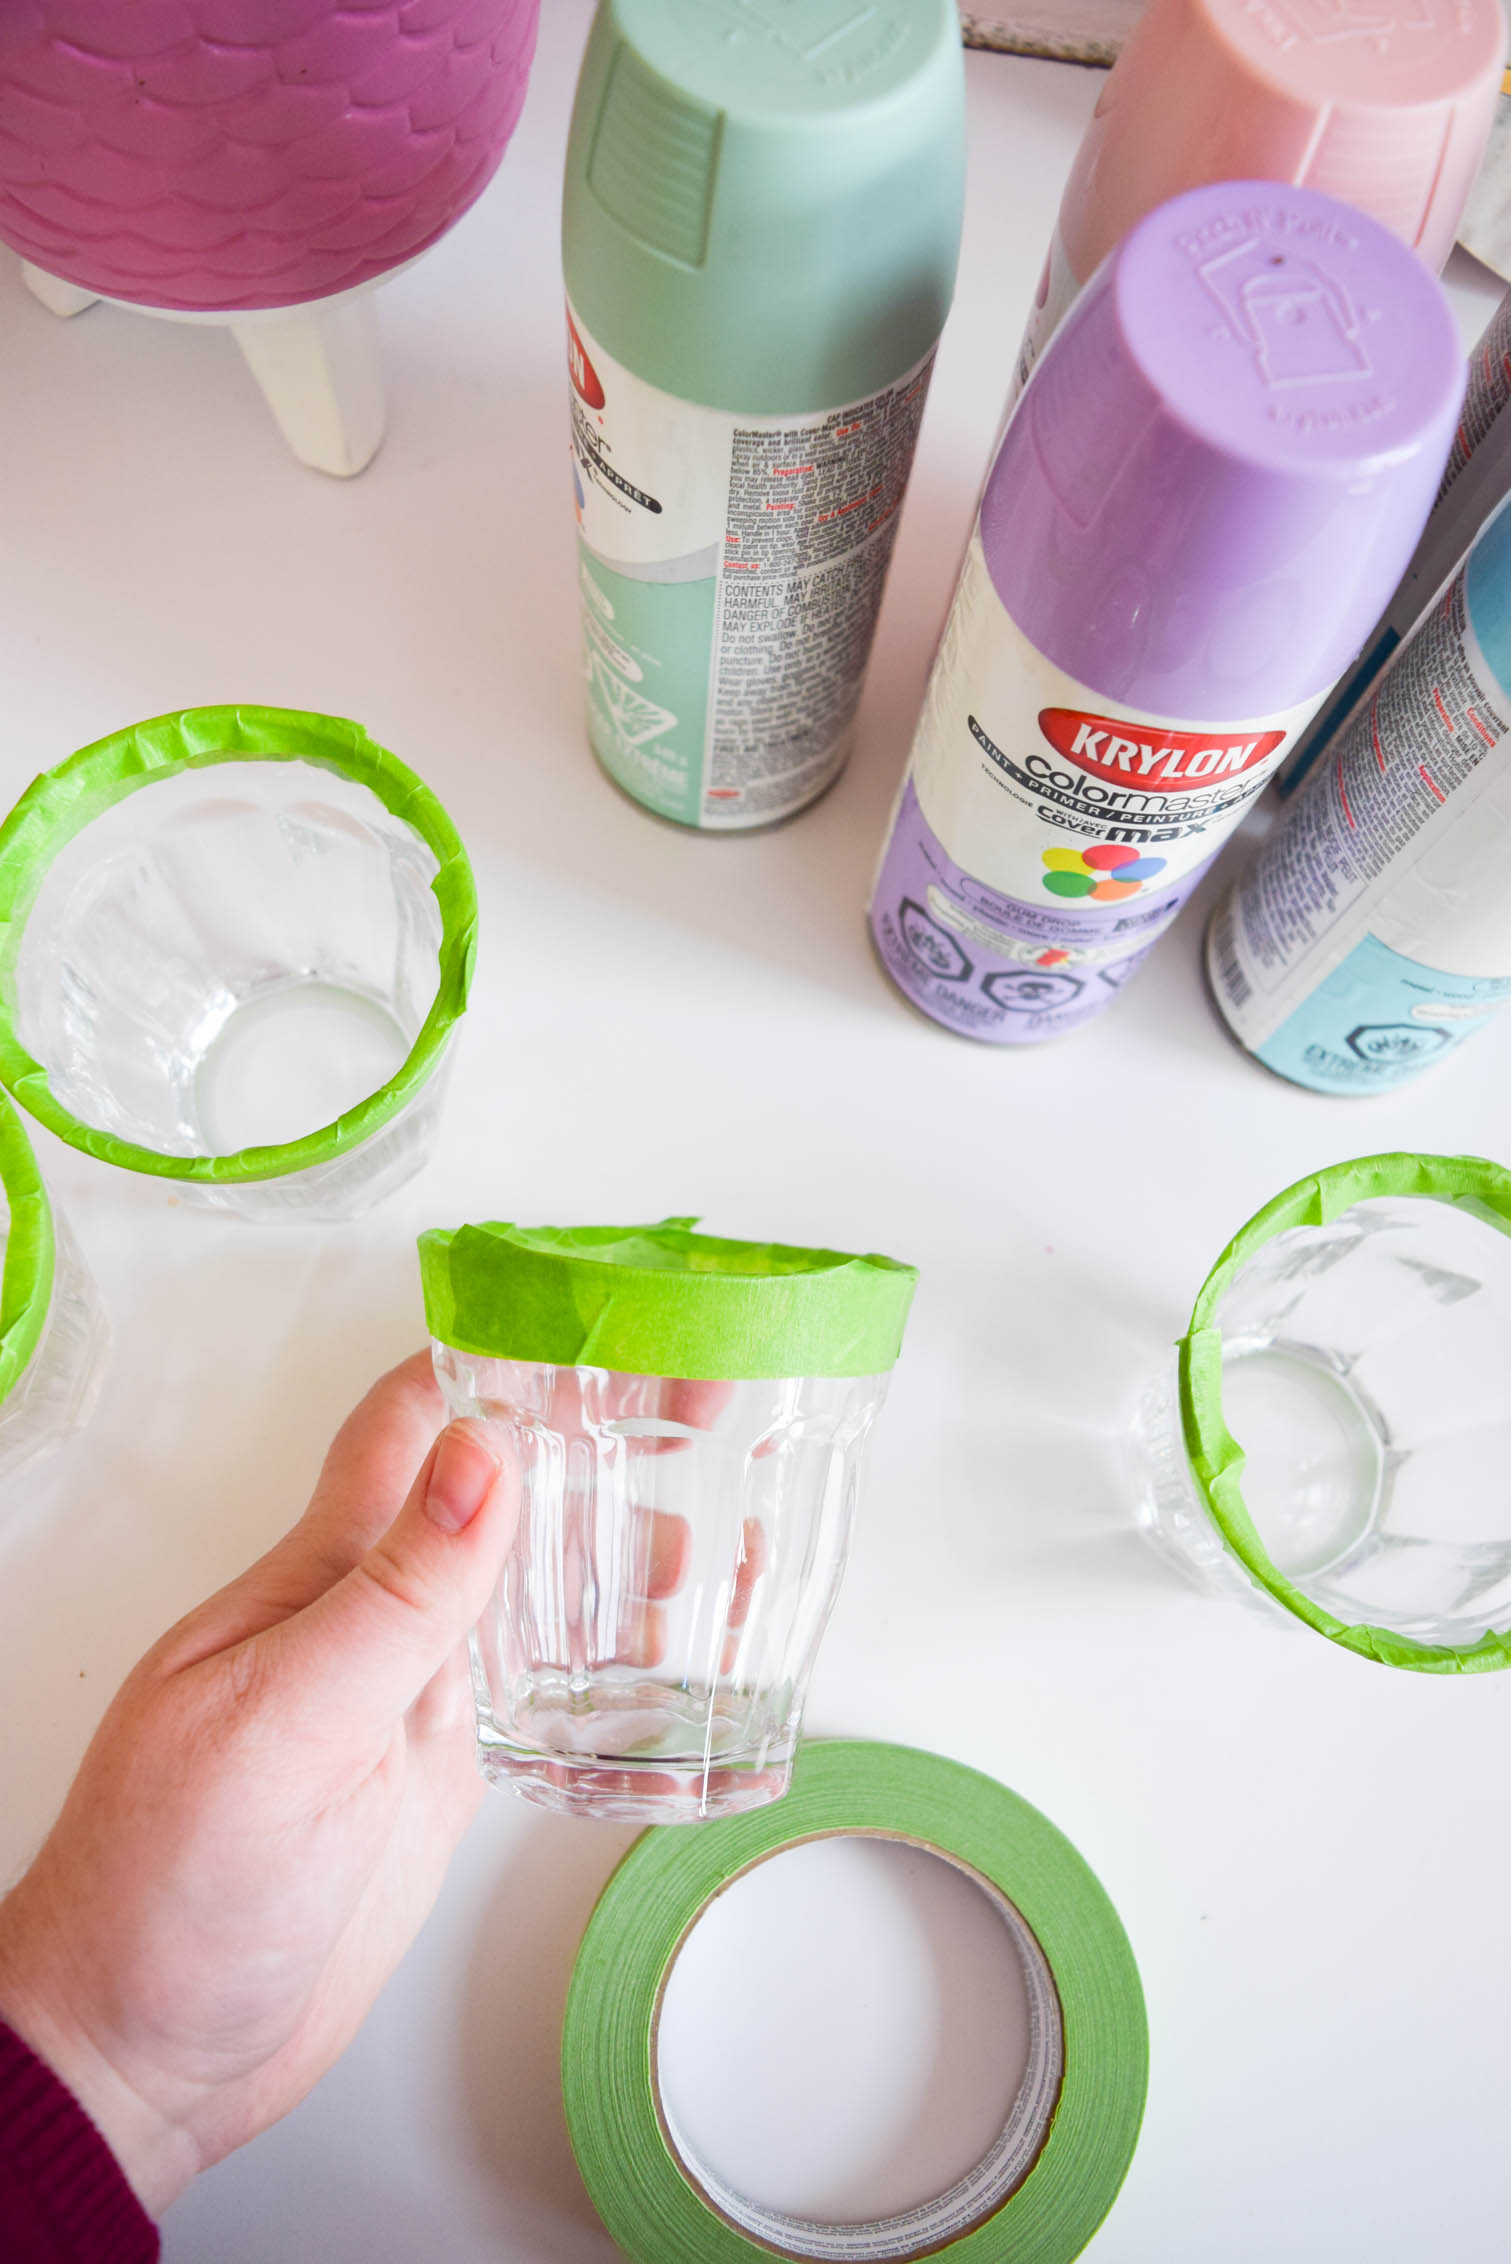 DIY Ombre Margarita Glasses (and margaritas!) to help you get your drank on. All you need is Krylon spray paint and some miss-matched glasses from the thrift store.